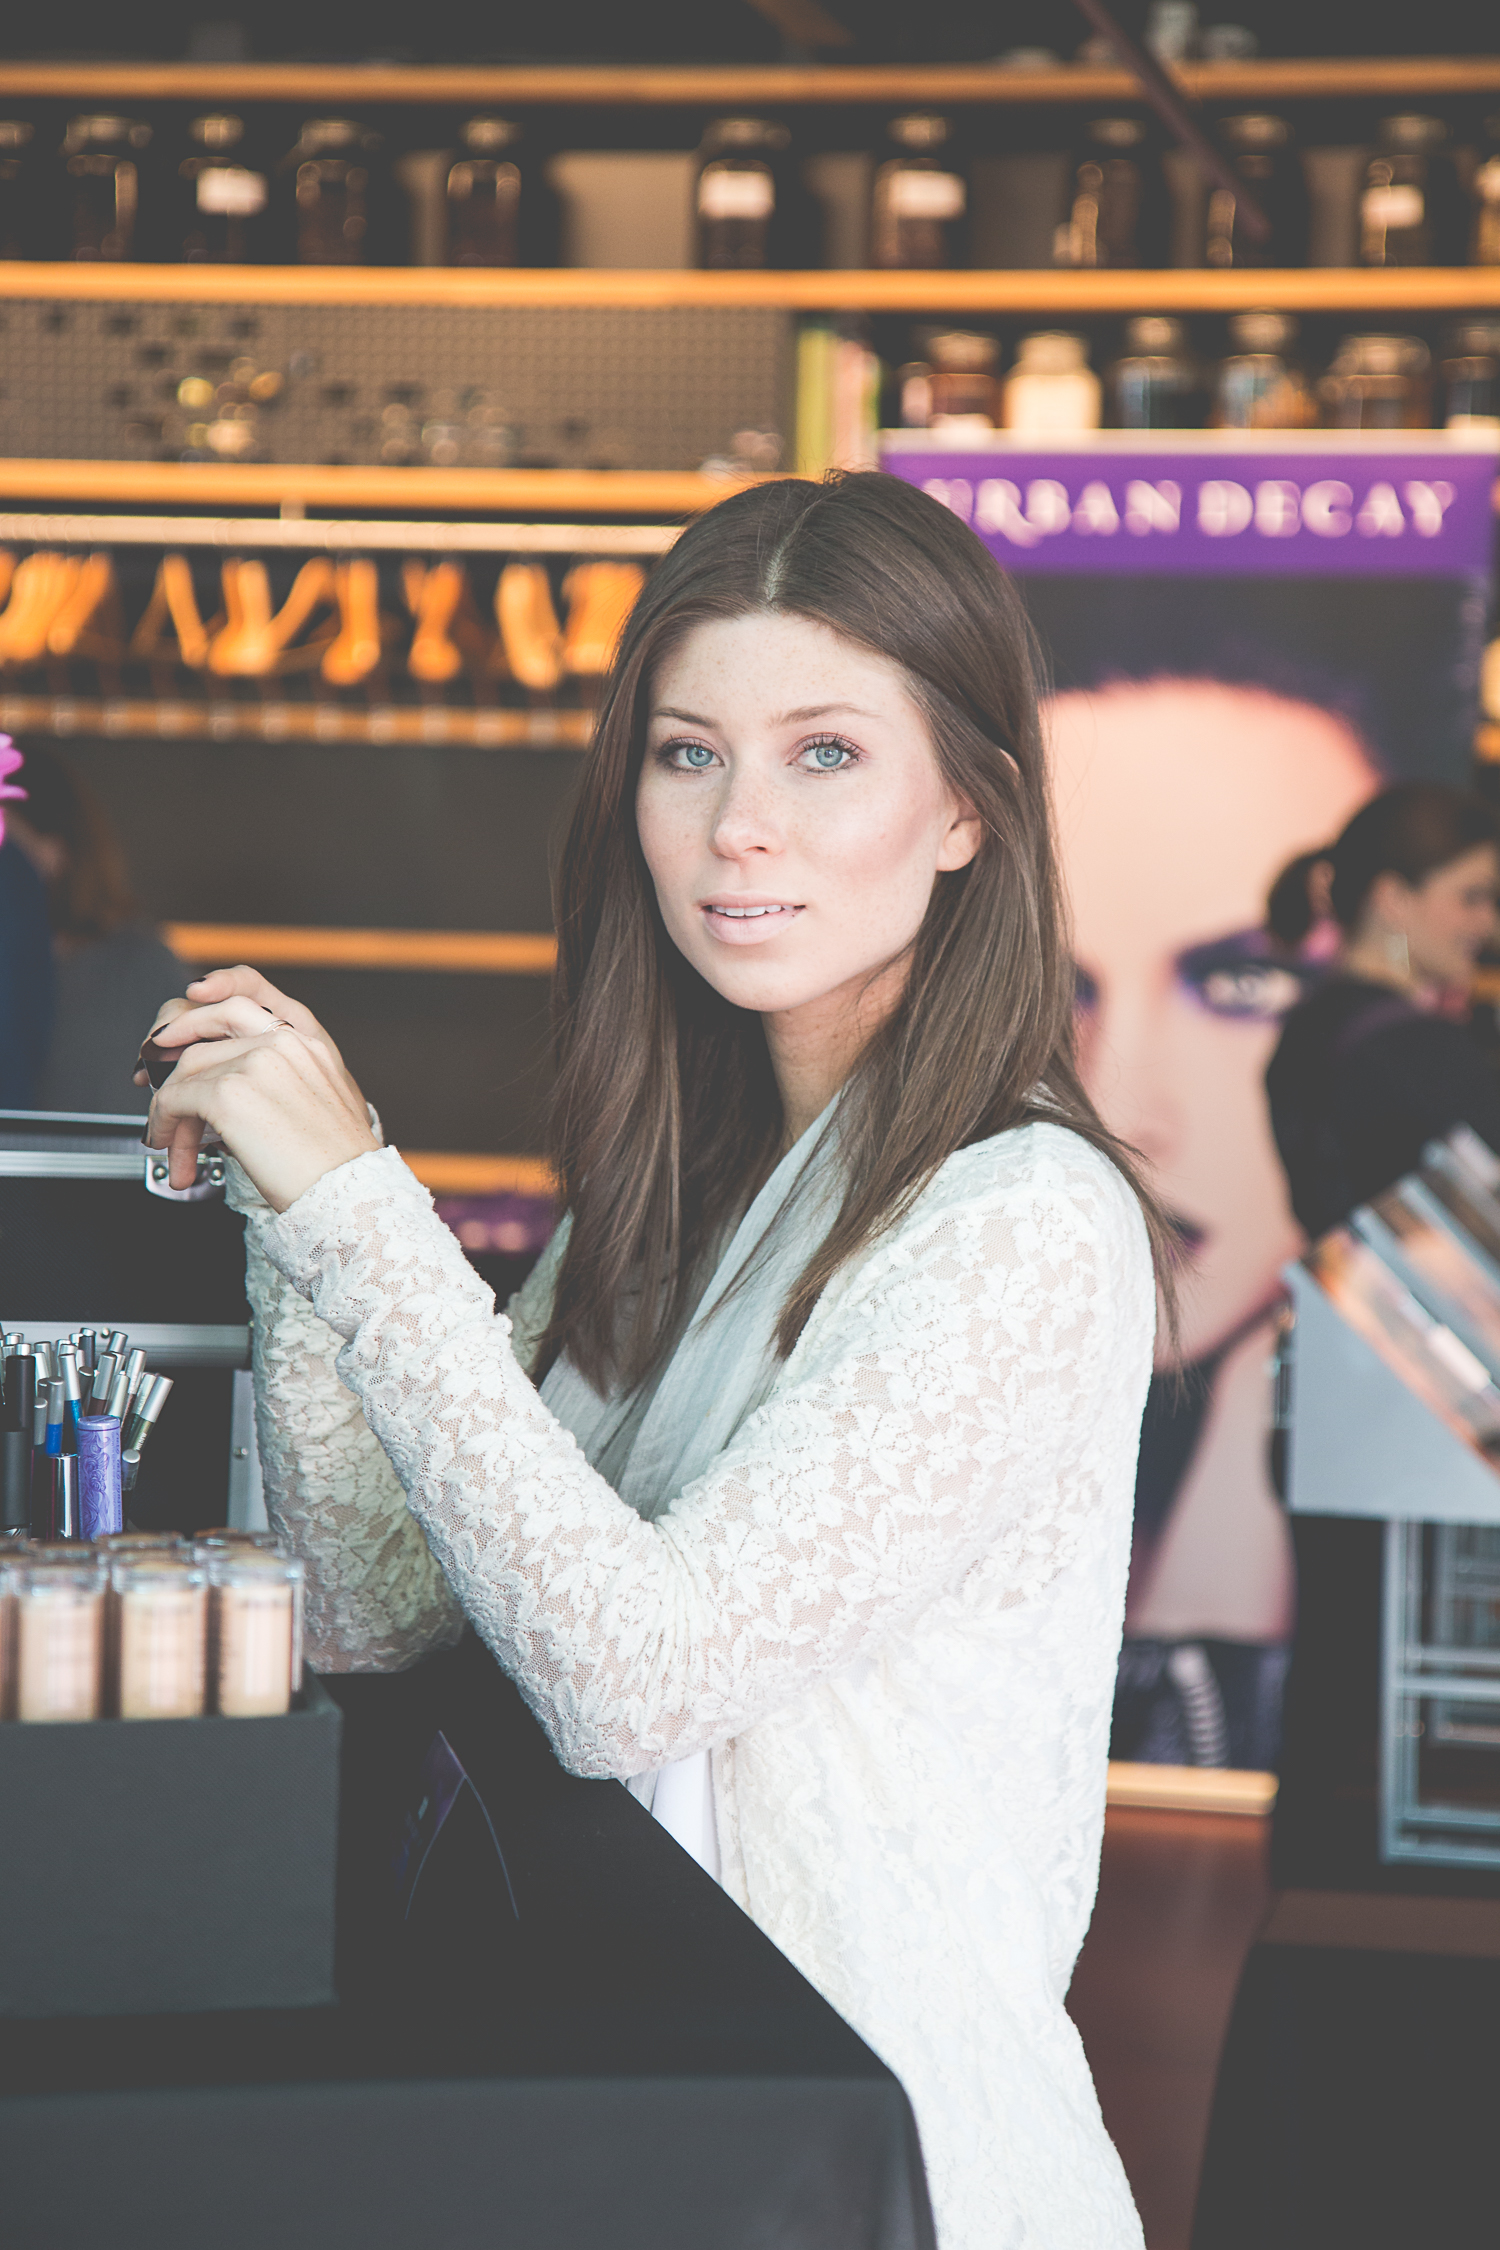 Out & About: Urban Decay Brunch, Heuer am Karlsplatz | The Daily Dose